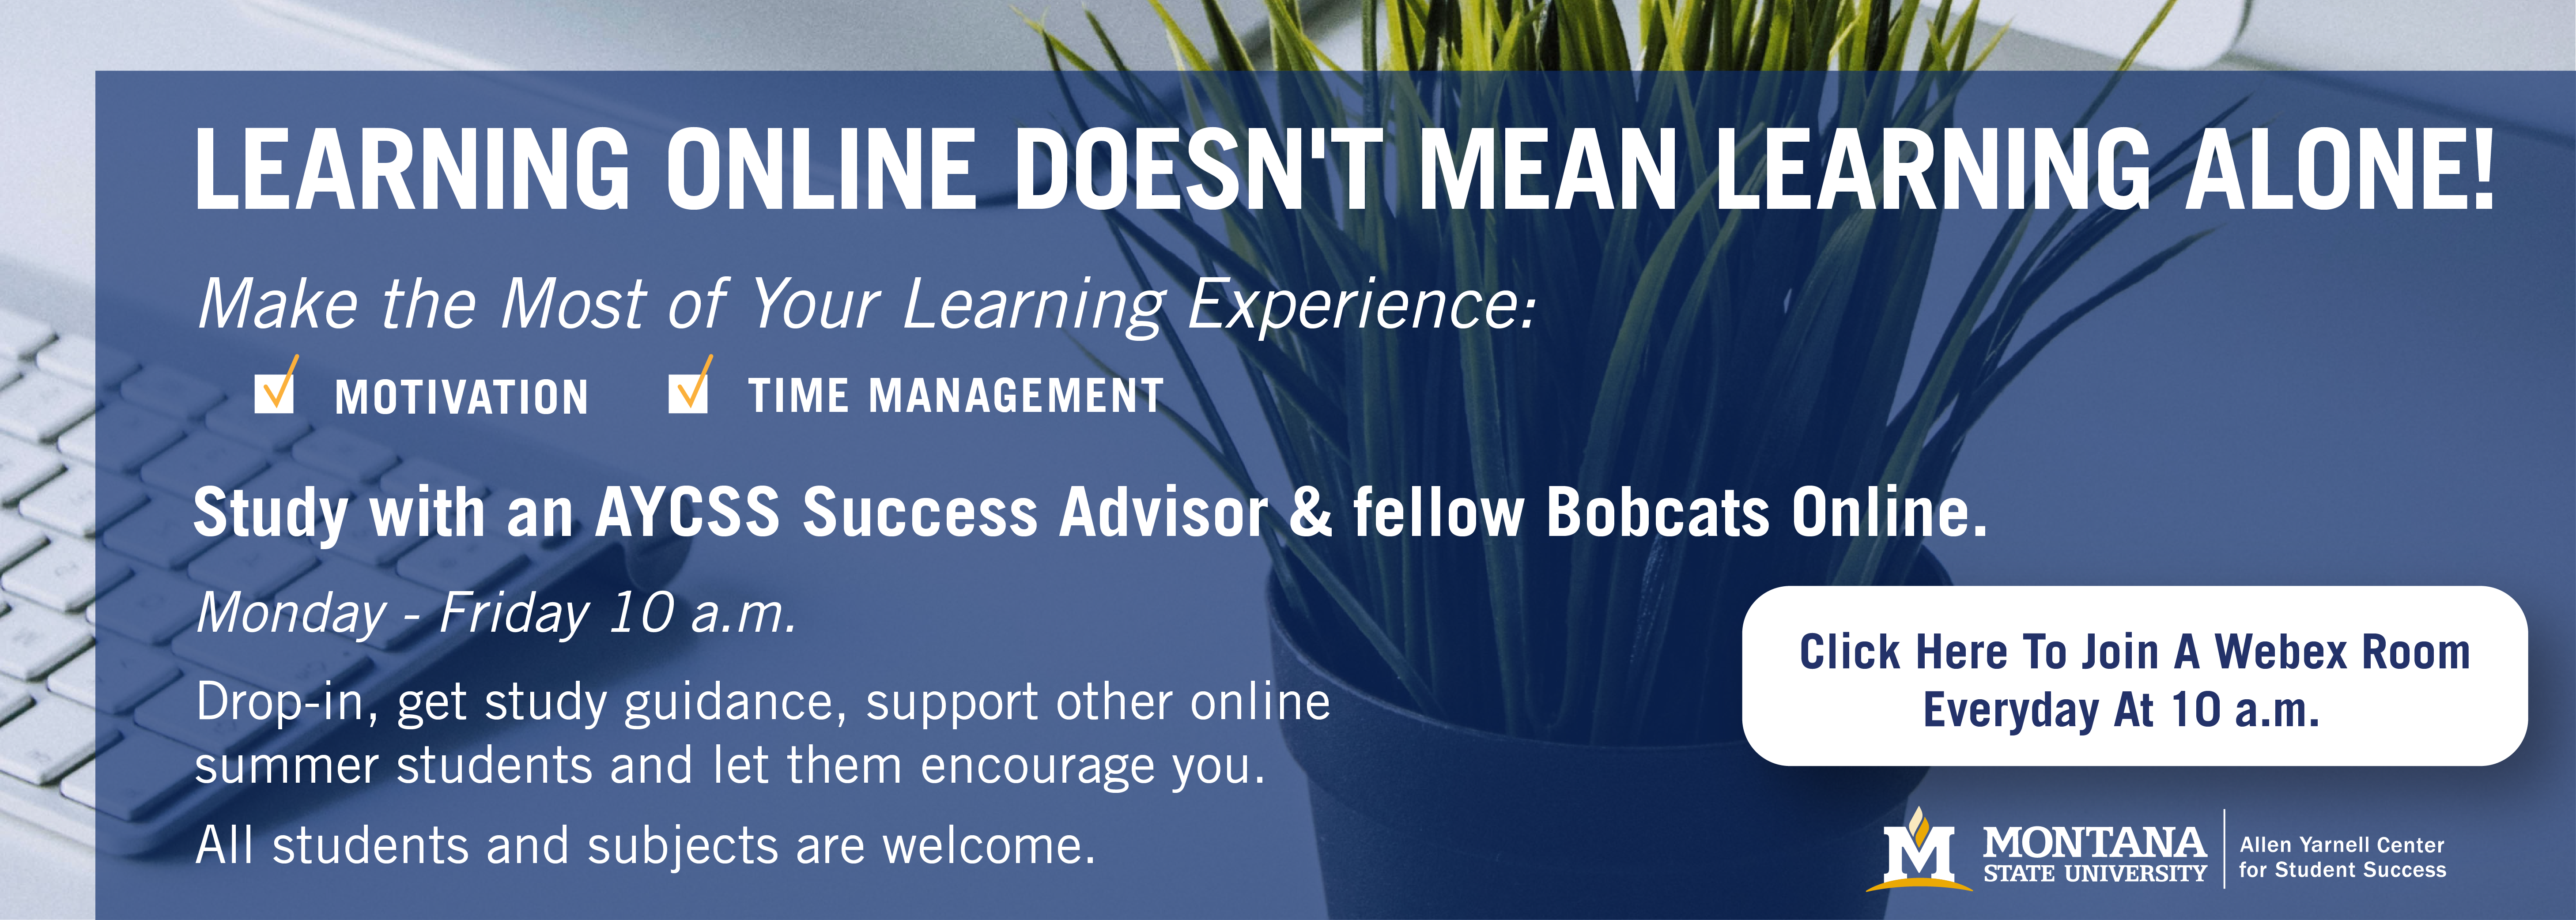 """""""Learning Online Doesn't Mean Learning Alone""""  Study with an AYCSS Success Advisor and your fellow Bobcats Online. Monday - Friday 10 a.m. Drop-in, get study guidance, support other online summer students and let them encourage you. All students and subjects are welcome.  Click here to join every day at 10 a.m.: Webex room here_"""